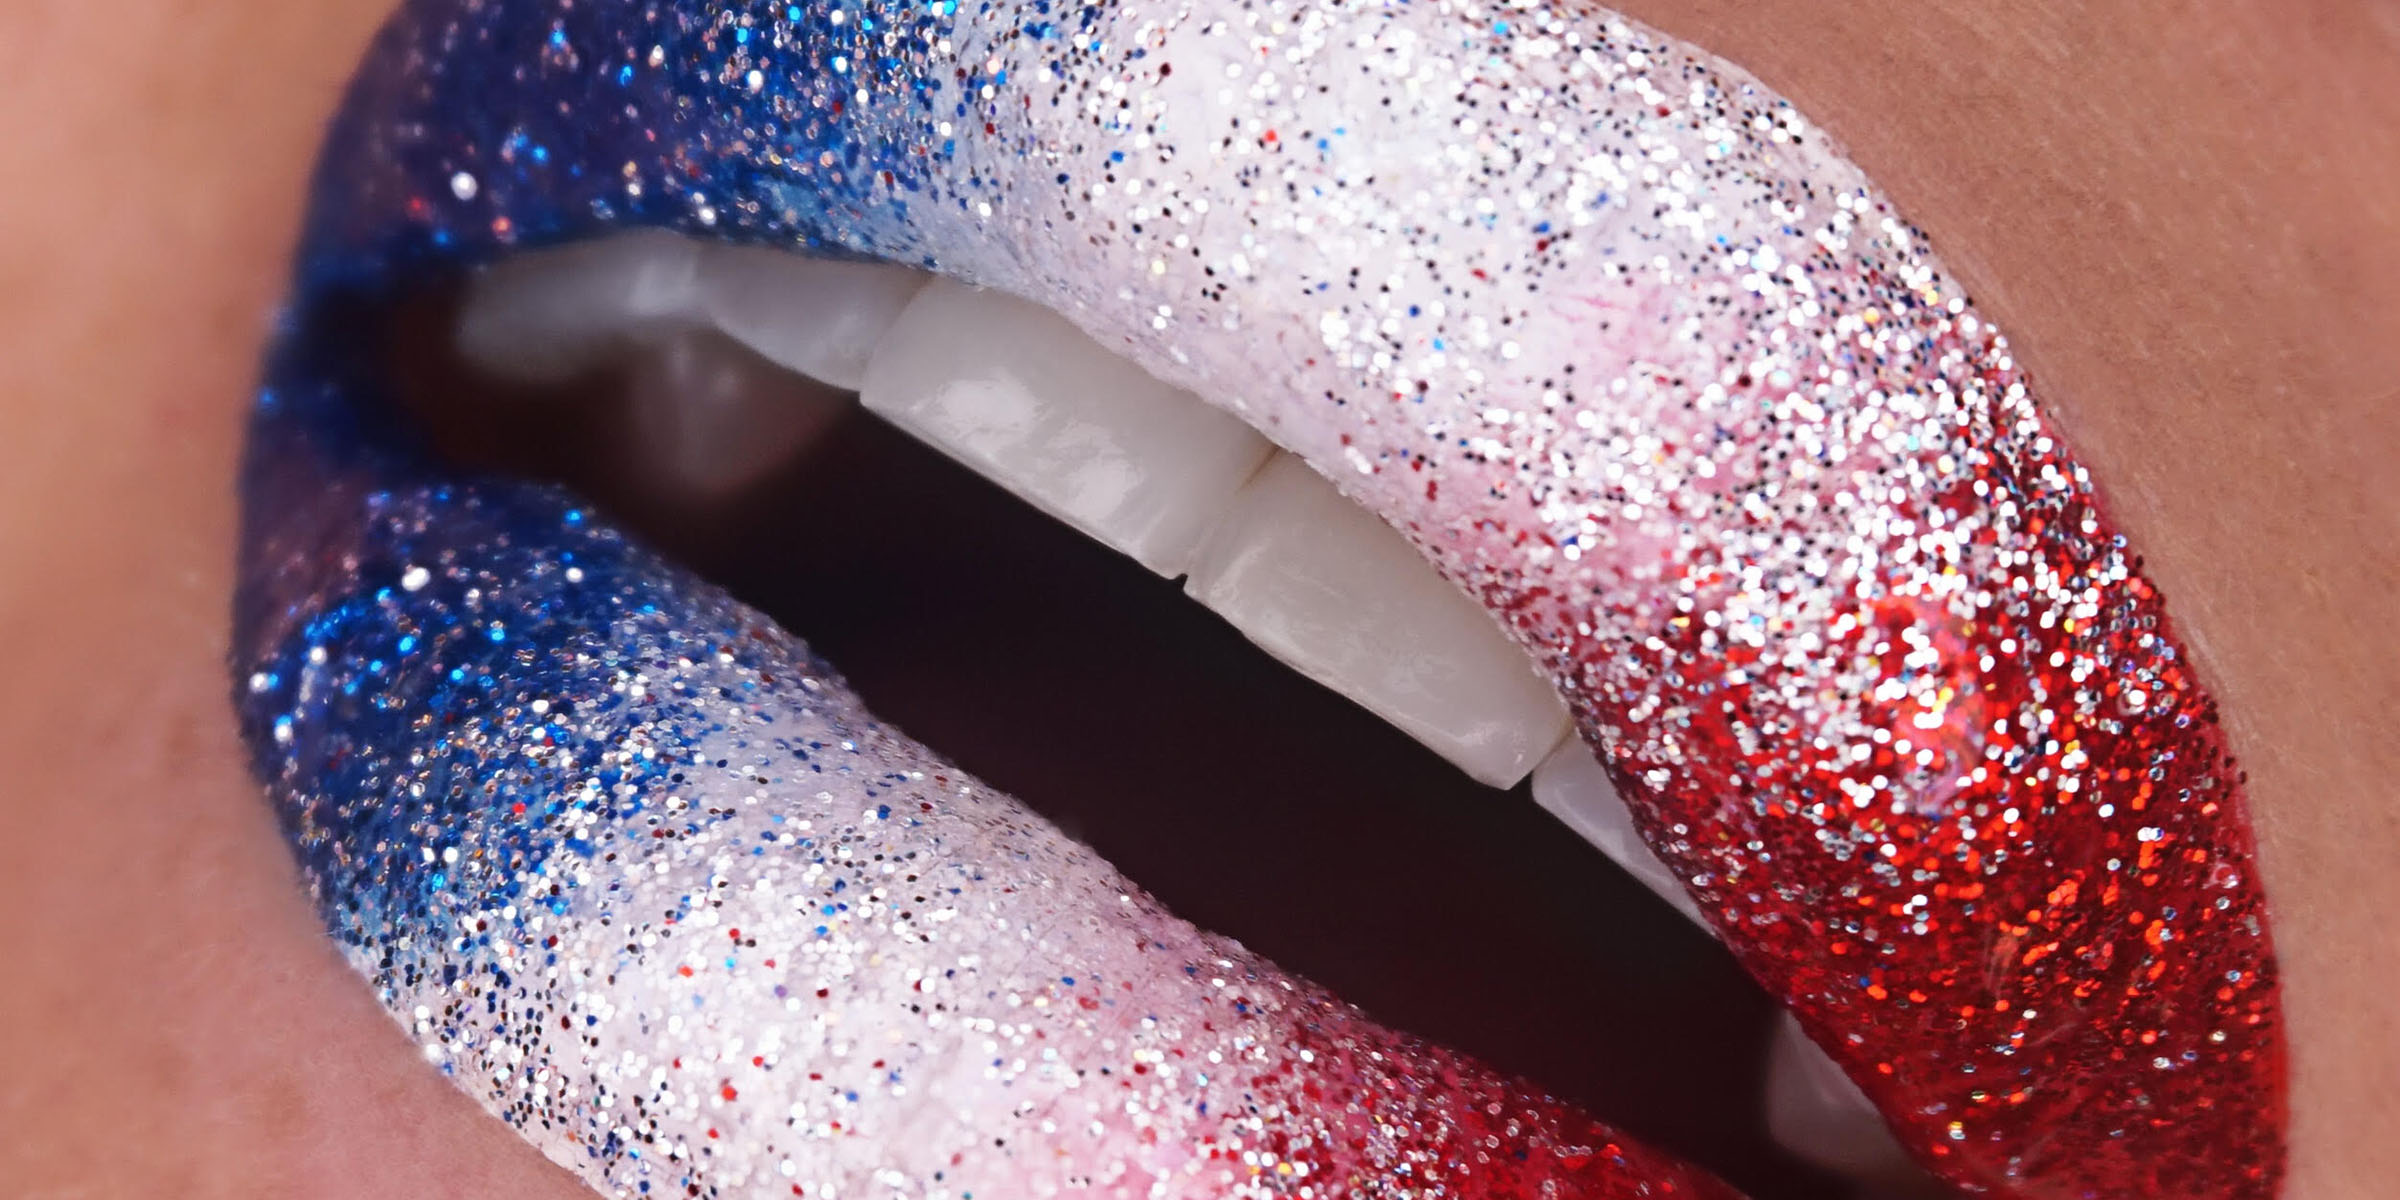 7 Easy Instagram Worthy July 4th Makeup Looks And Ideas